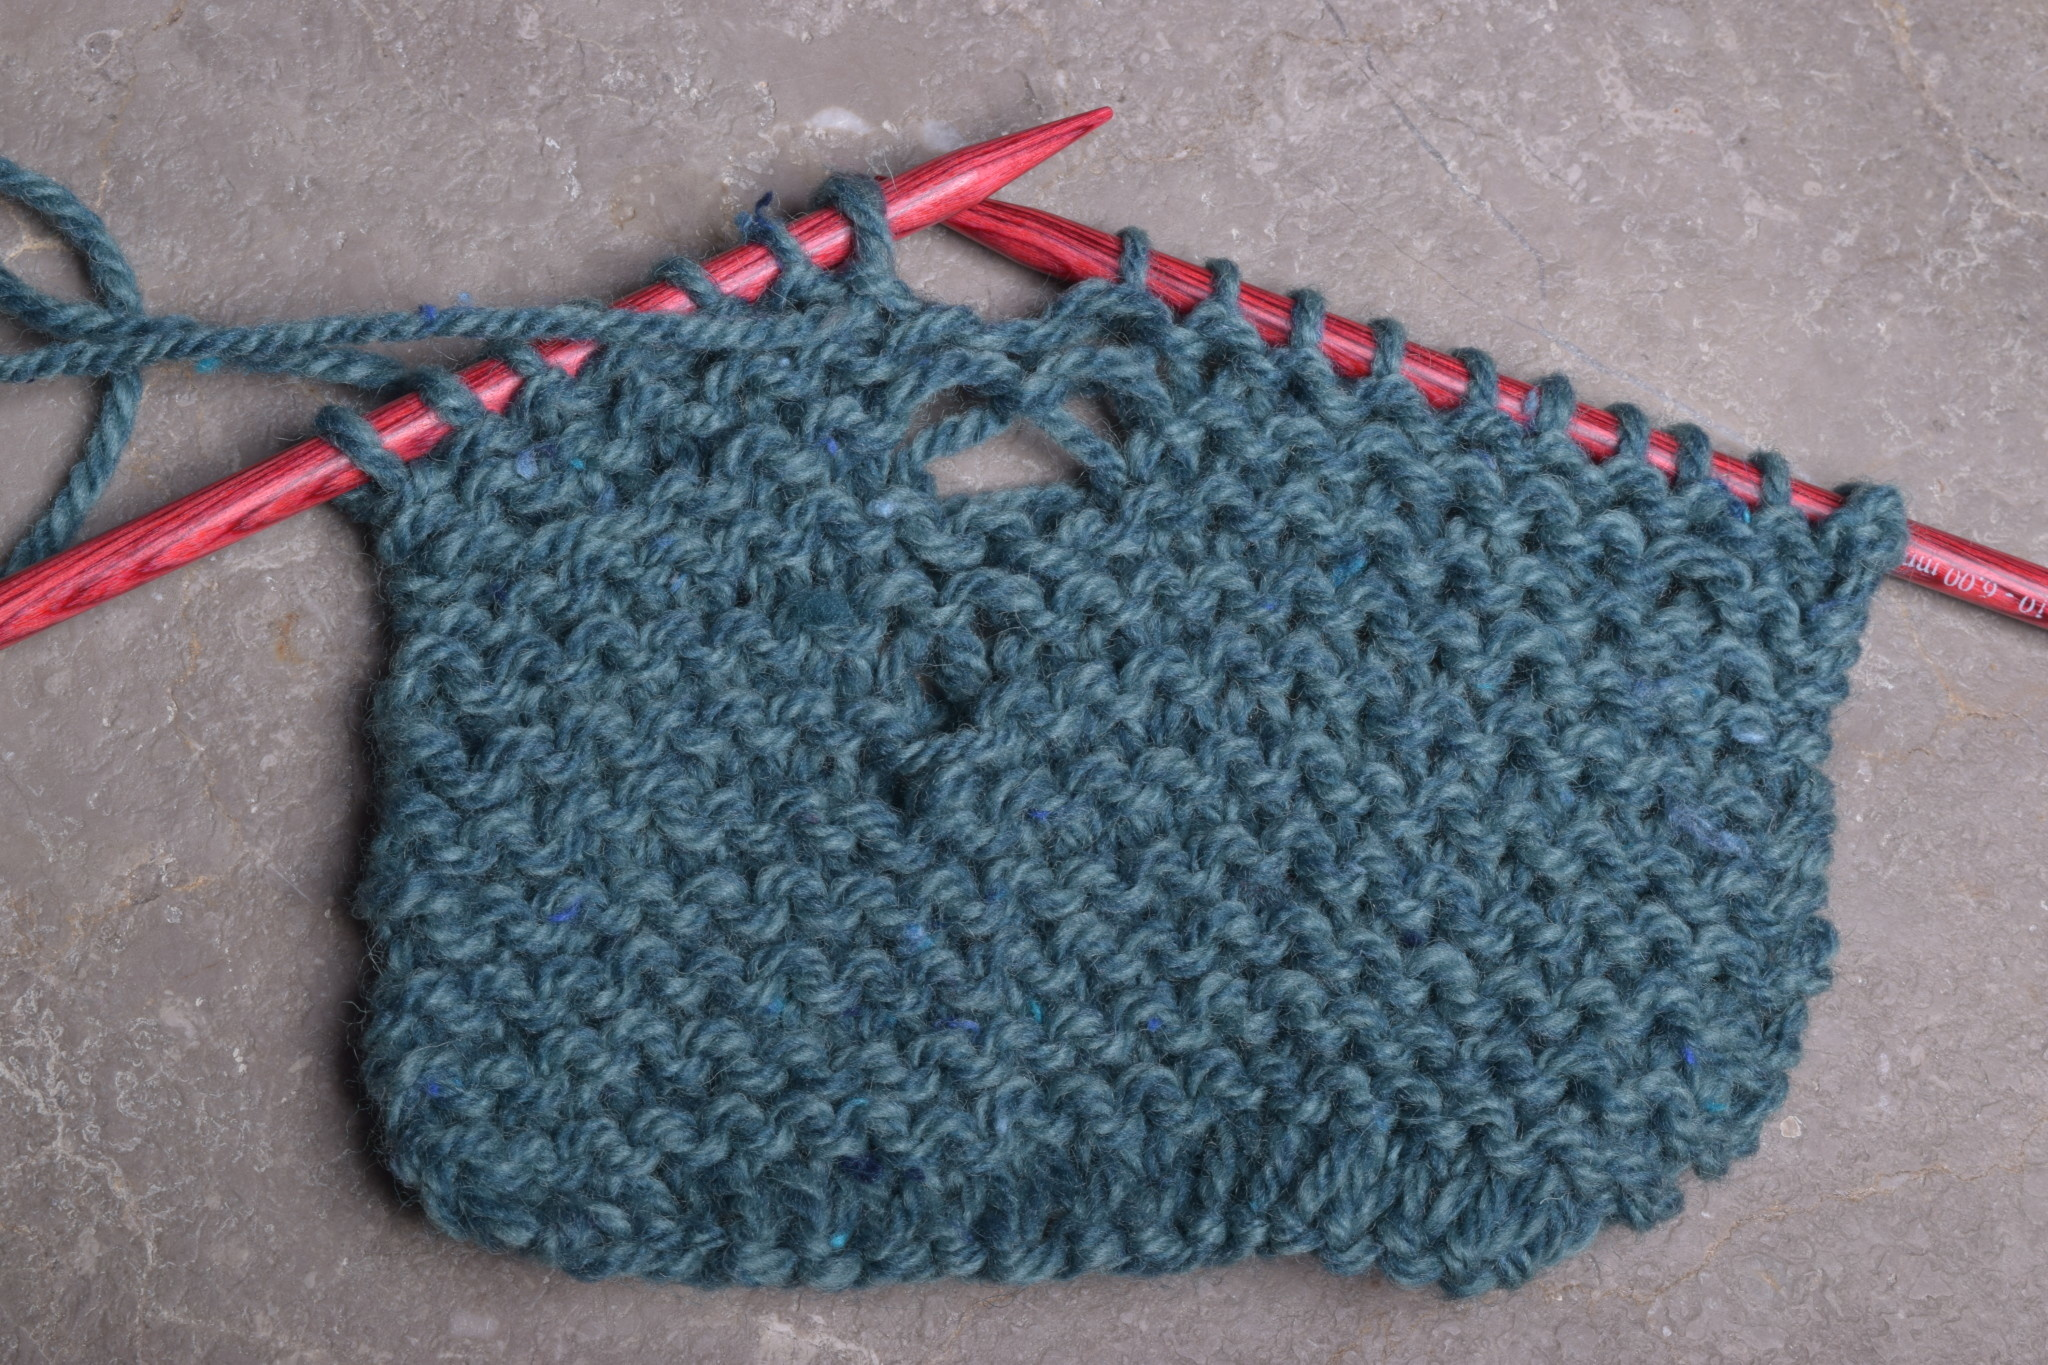 Fixing Knitting Mistakes; Friday, May 31;  3:00-5:00PM